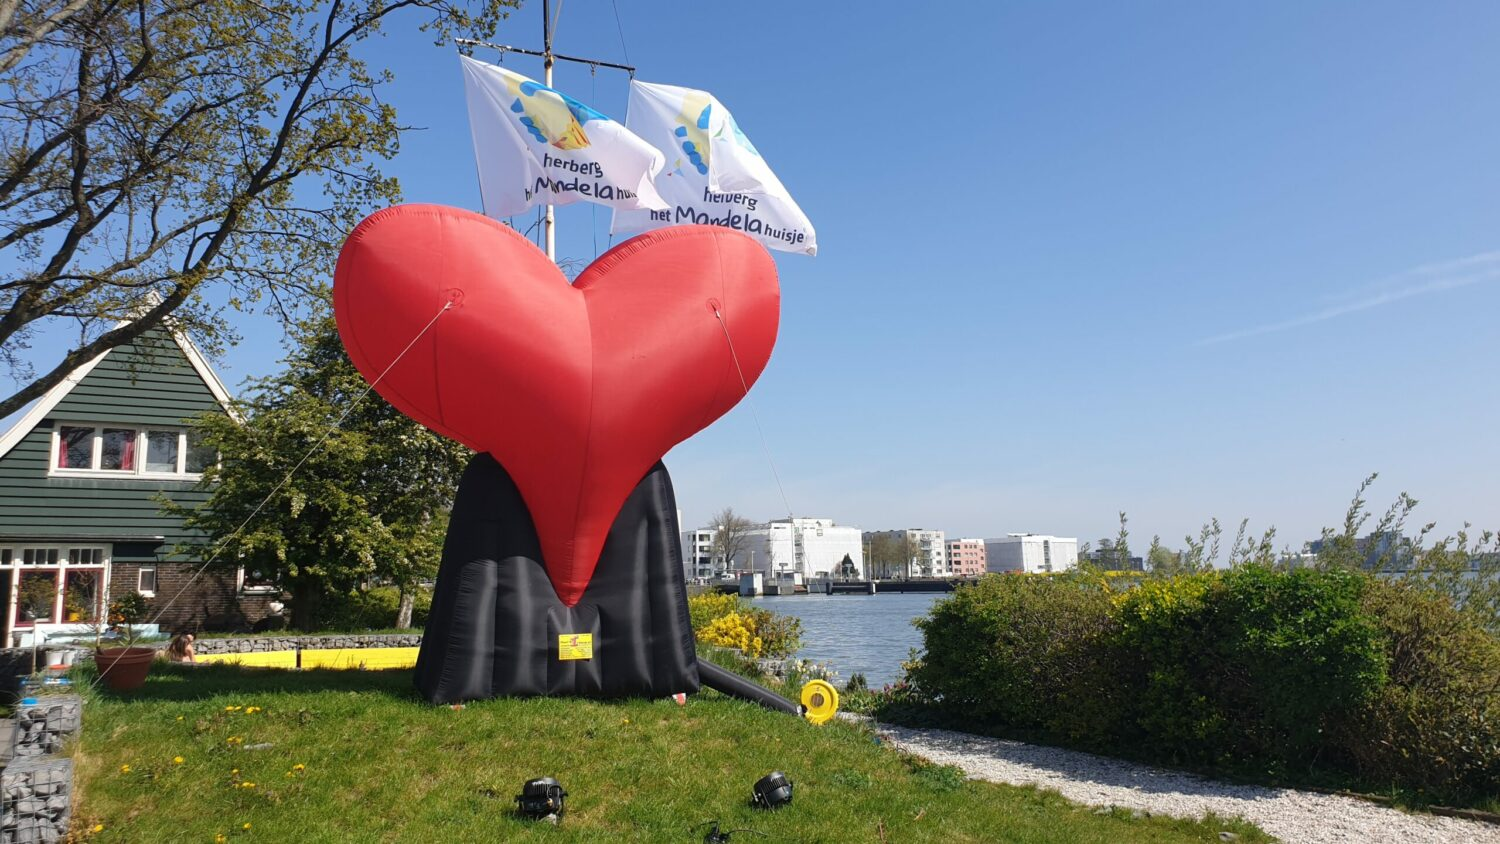 Five meter tall heart at the Mandela house